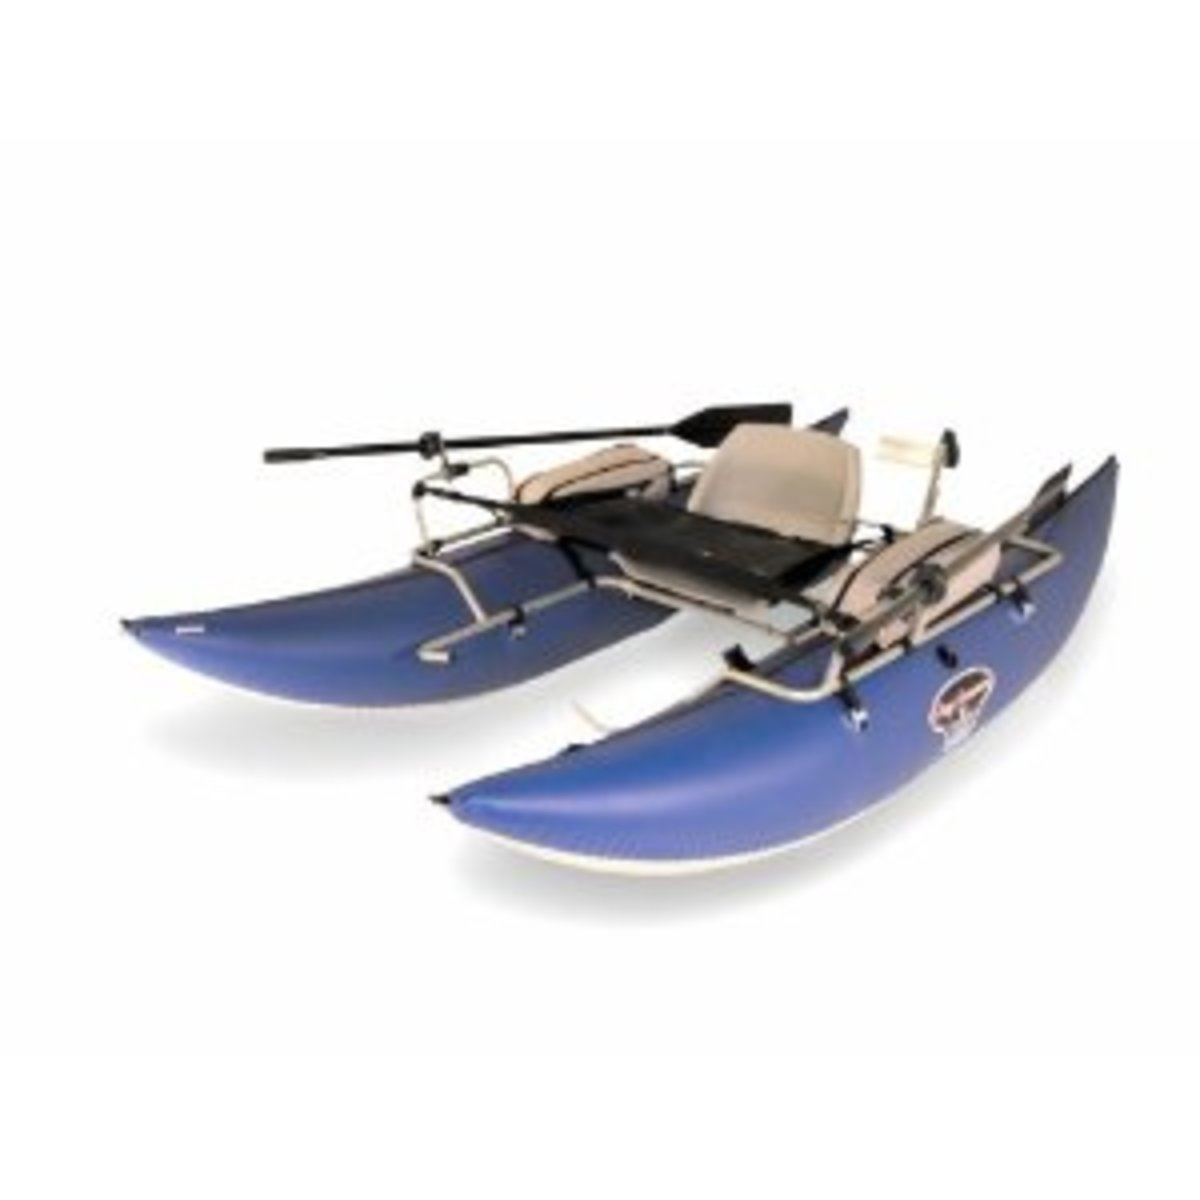 The Best Pontoon Boats For Freshwater Anglers